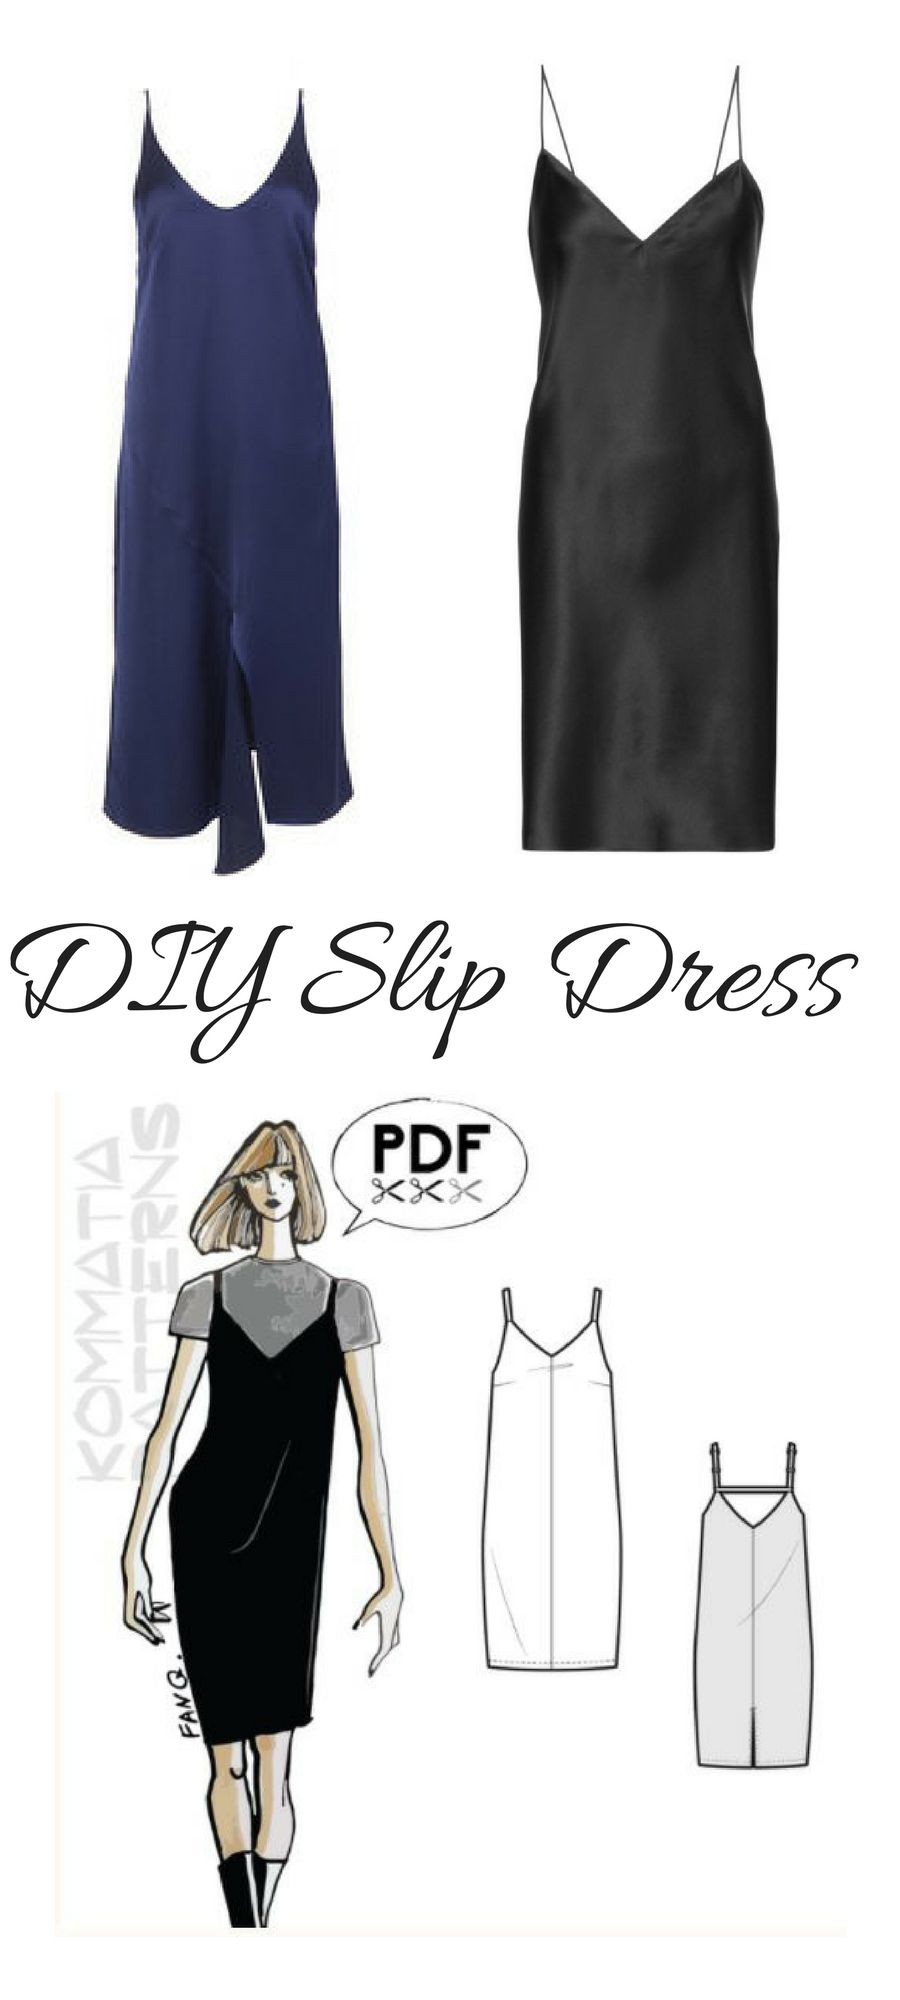 Elegant Picture of Diy Clothes Sewing Easy - figswoodfiredbistro.com -   12 dress DIY ideas